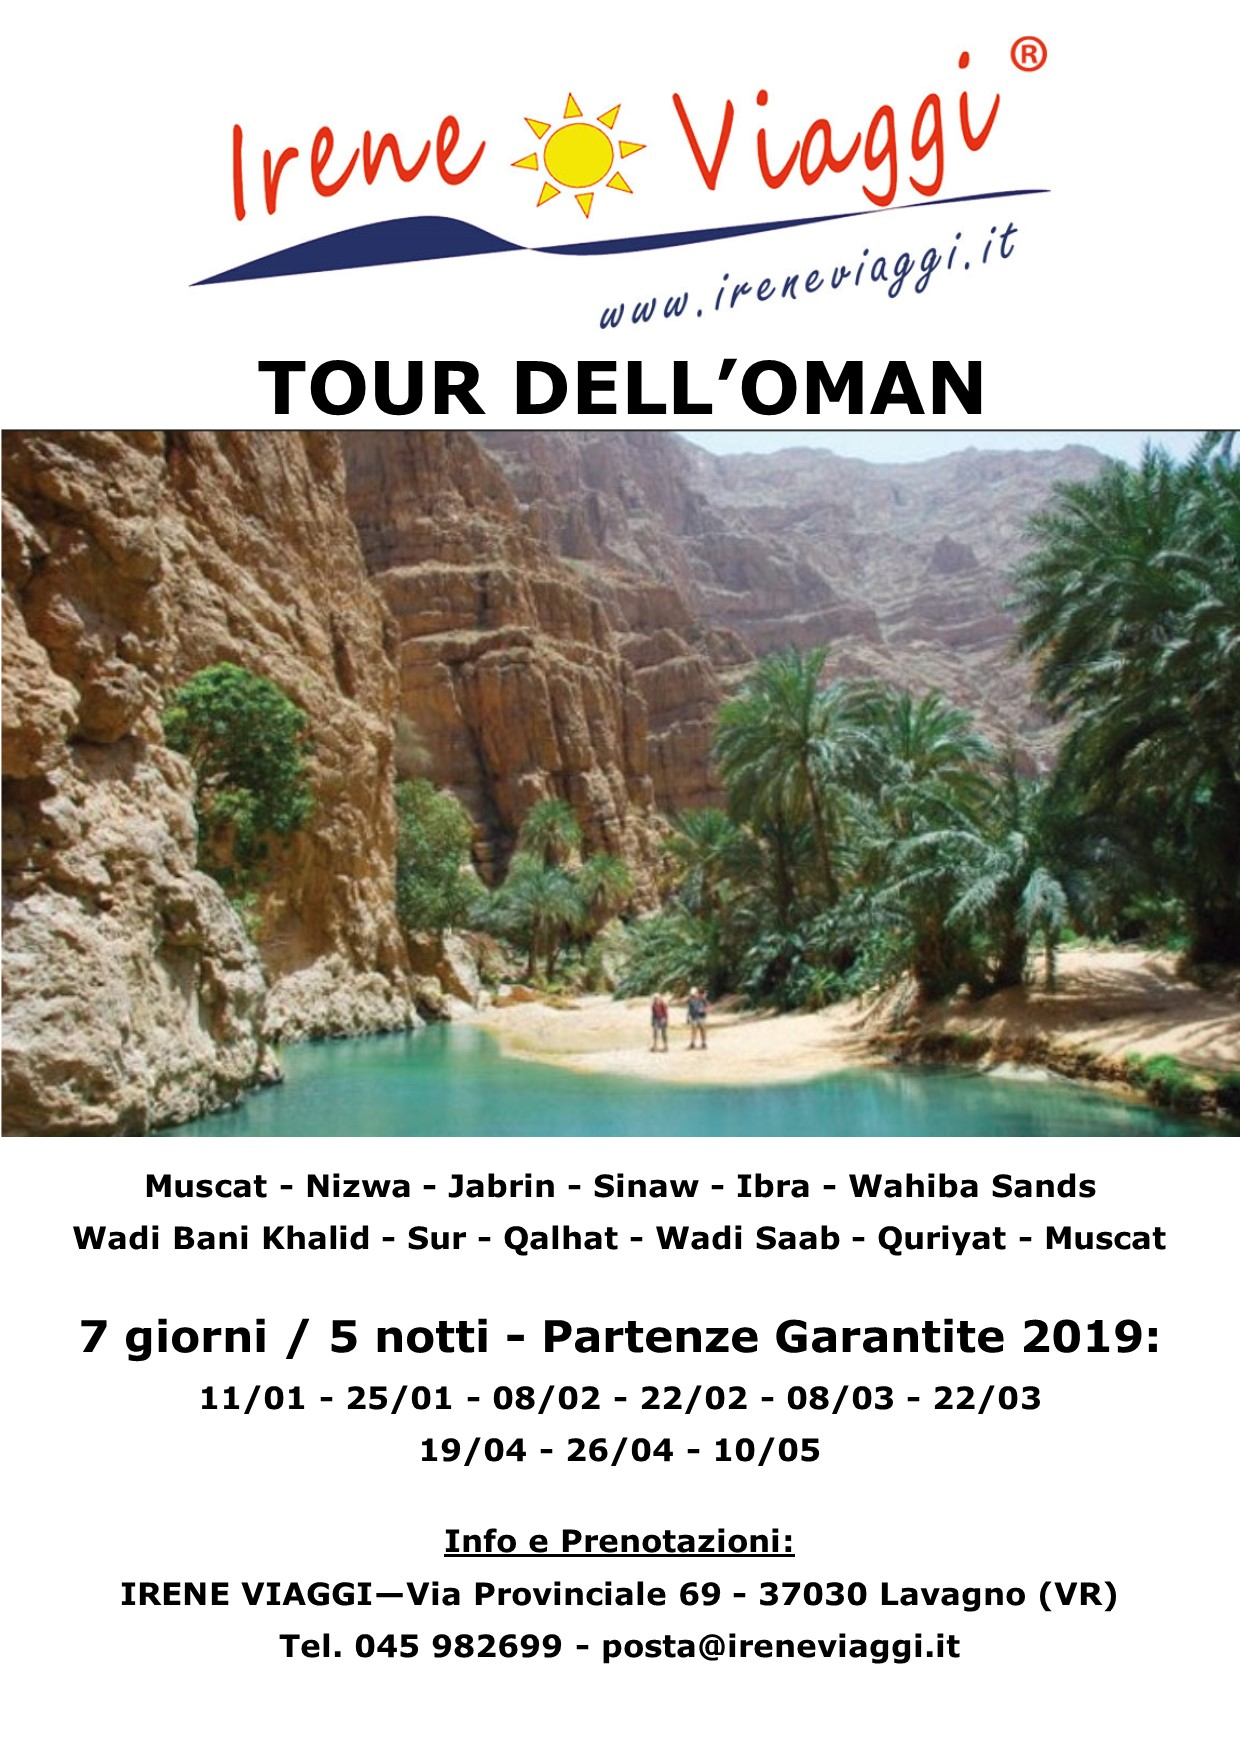 Tour dell'Oman